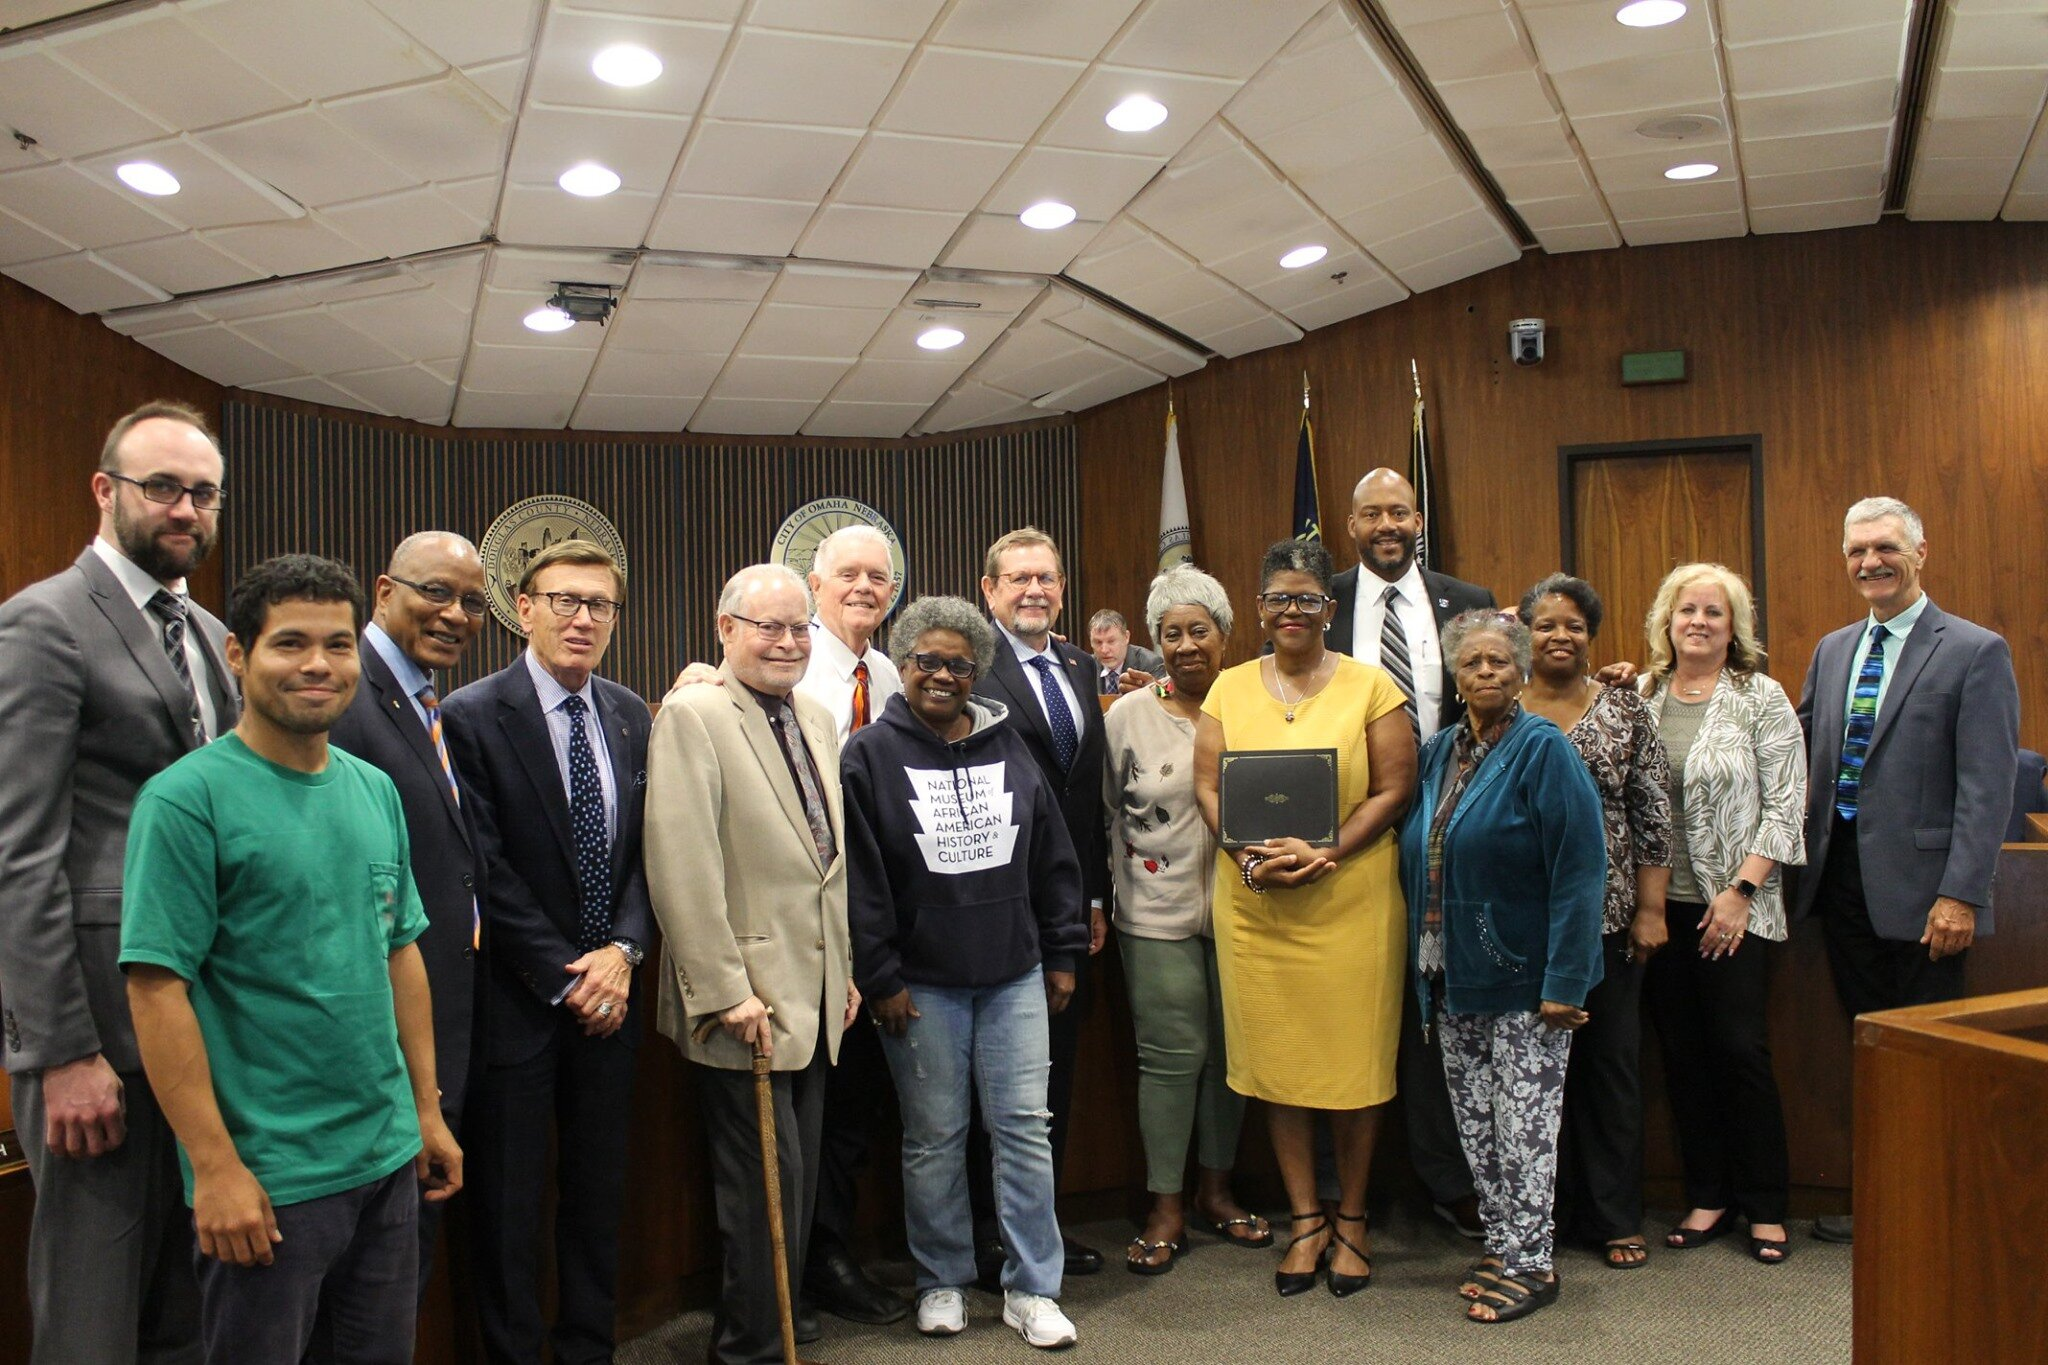 Douglas County Board of Commissioners and community leaders after a resolution passed 7 to 0, remembering the unlawful lynching of Will Brown.